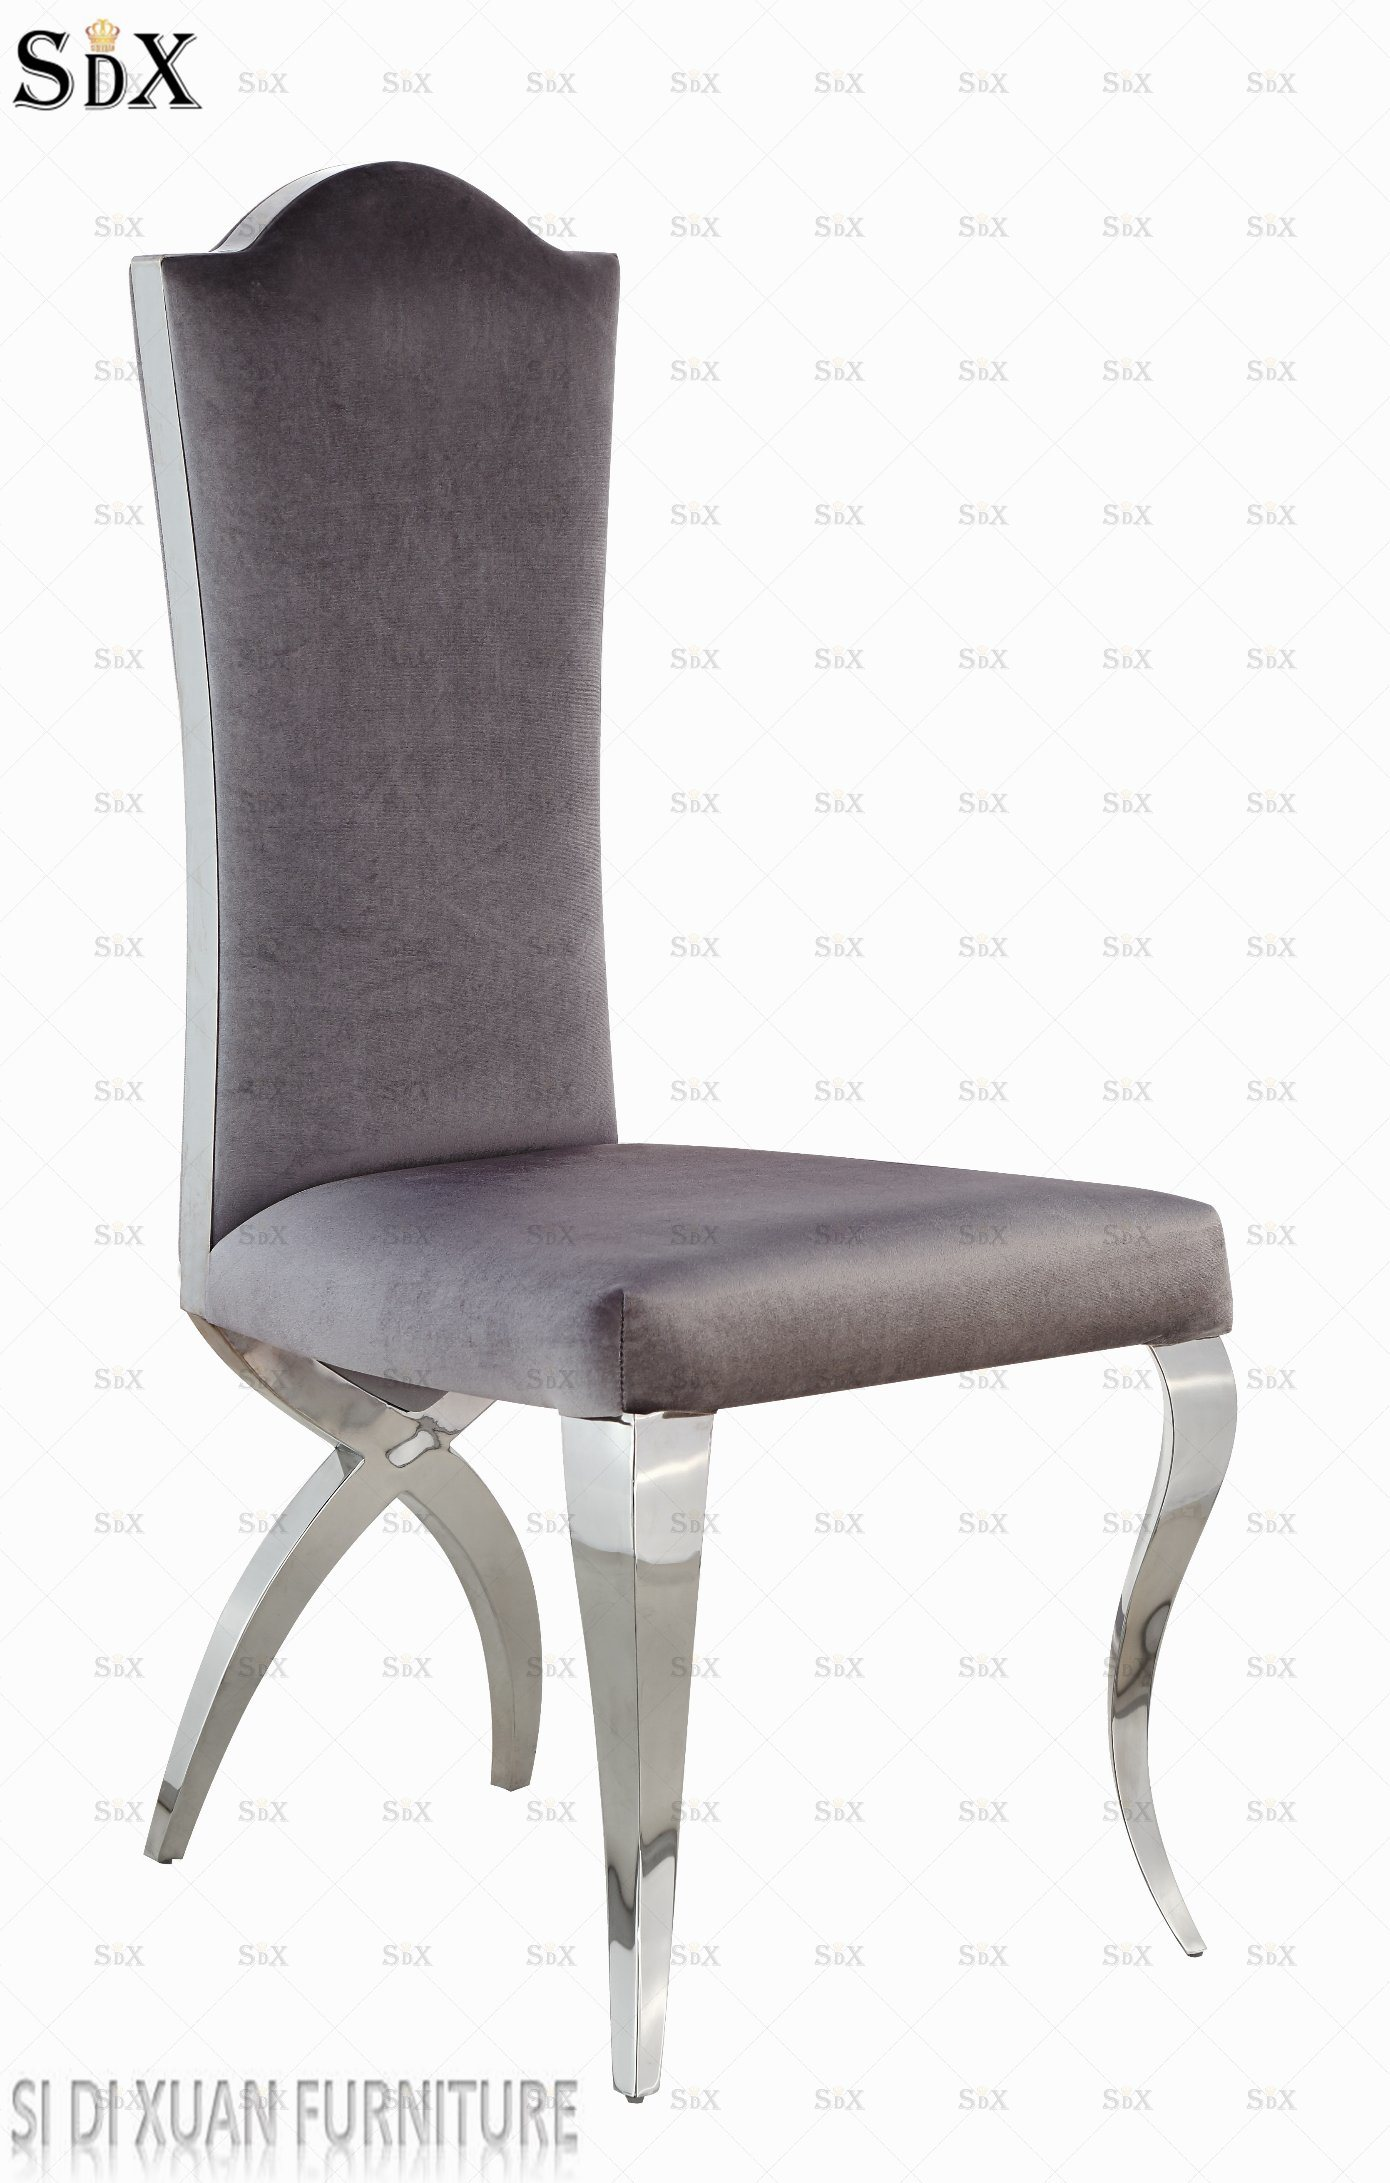 Silver Dining Chairs Hot Item Top Luxury Italian Style Dining Chairs Crushed Silver Velvet Stainless Steel Leg Dining Chairs